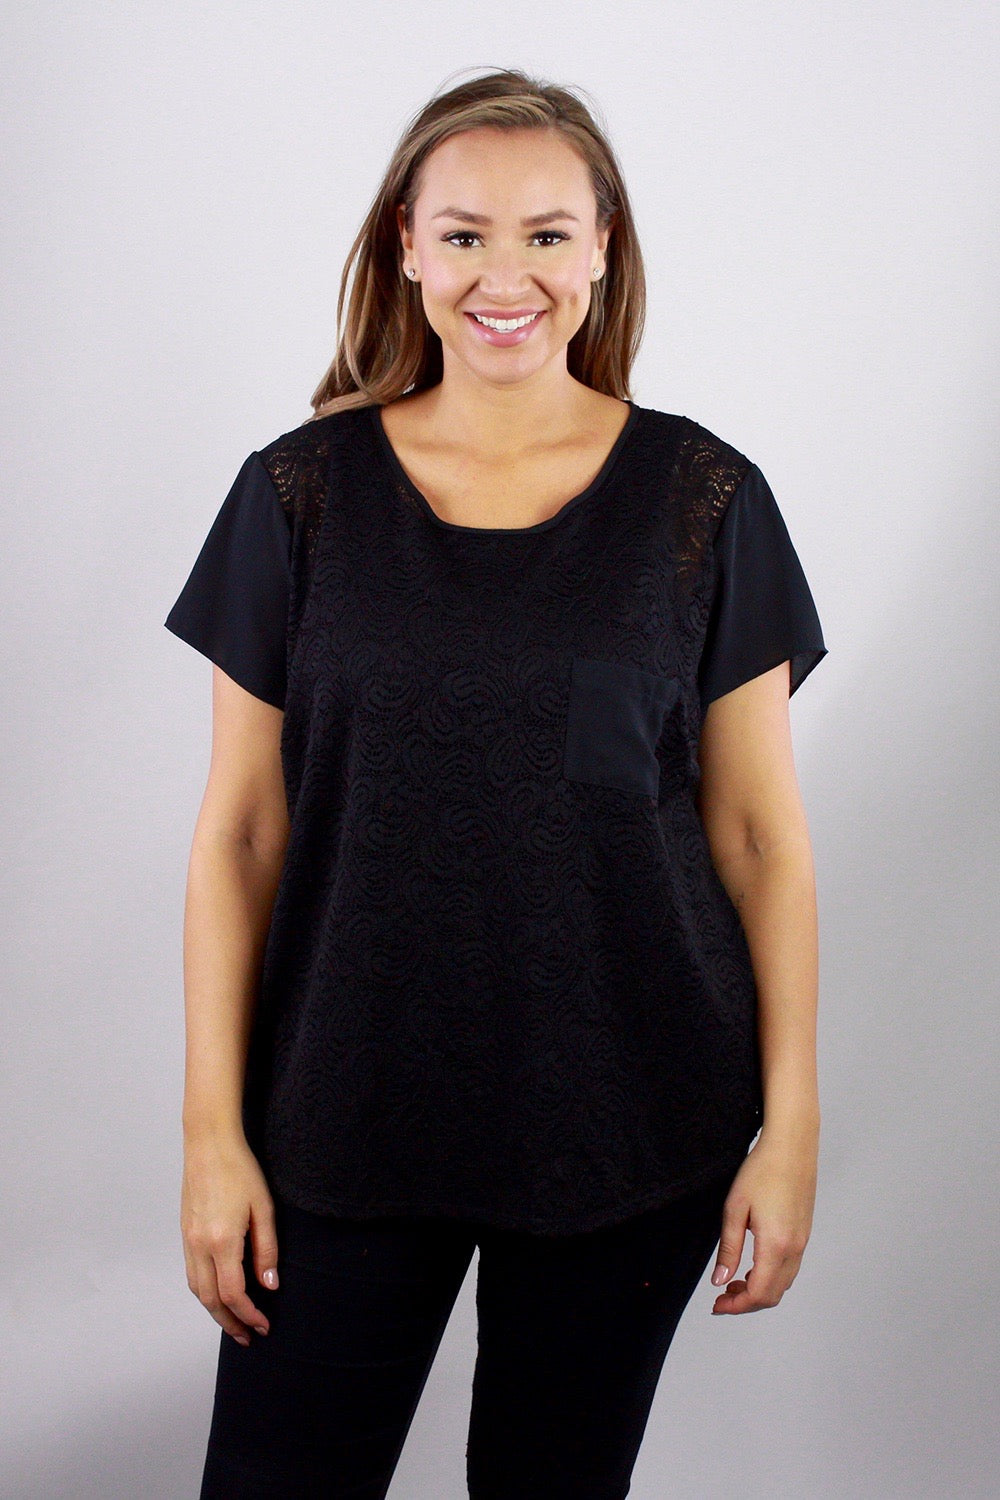 Black Lace Sheer Short-Sleeve Top - Plus